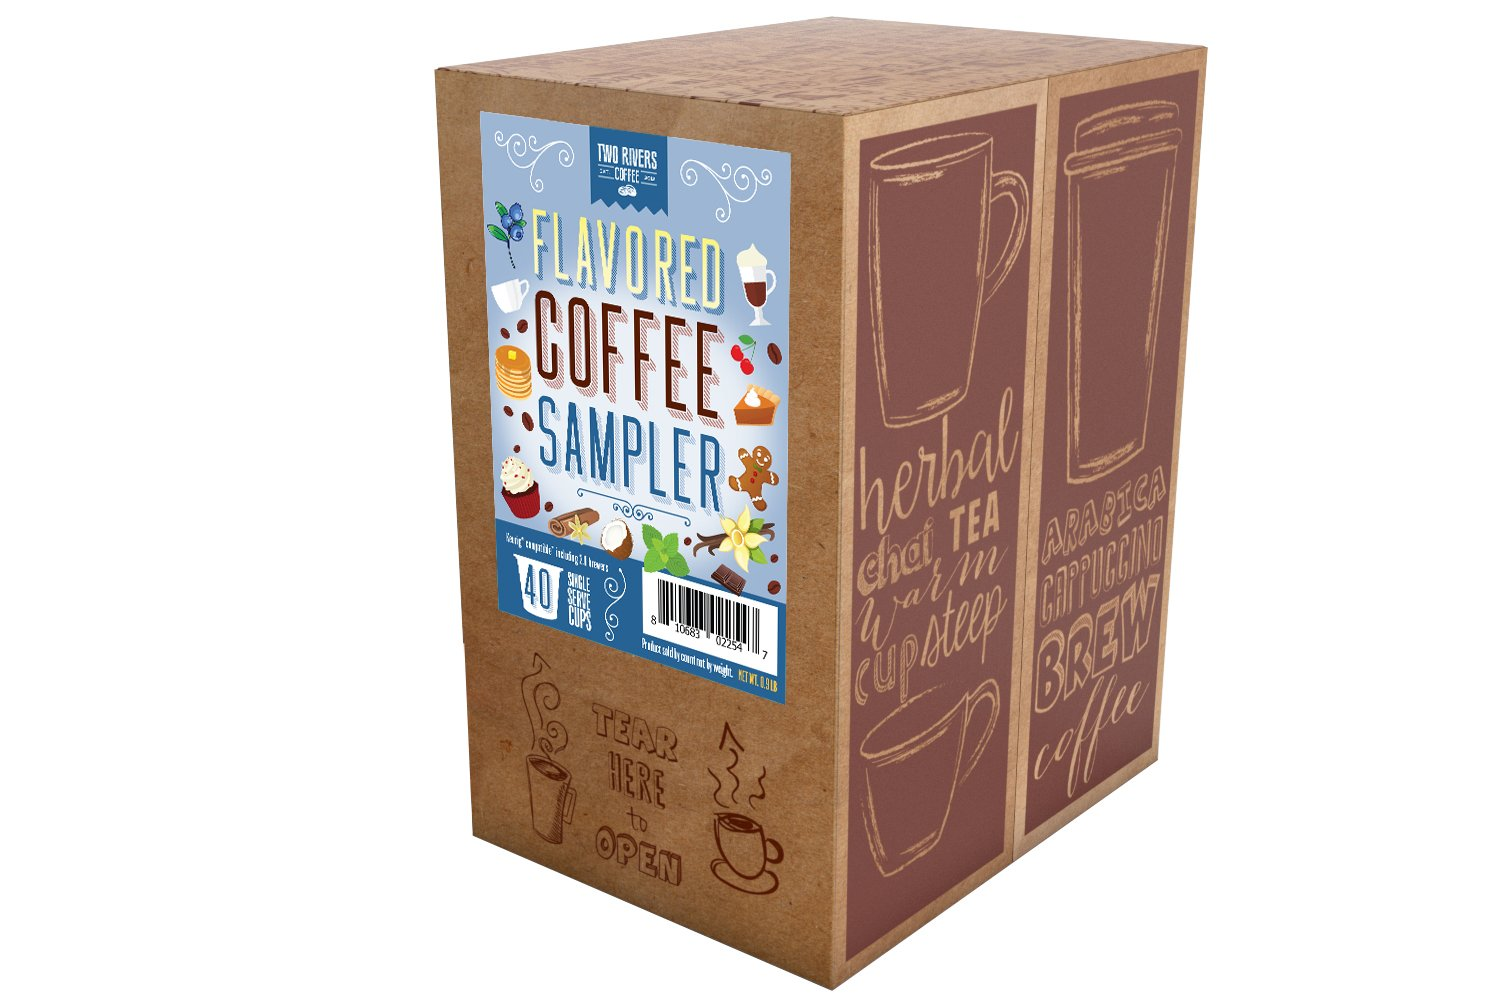 Two Rivers Flavored Coffee Single-Cup Sampler Pack for Keurig K-Cup Brewers, 40 Count by Two Rivers LLC (Image #2)